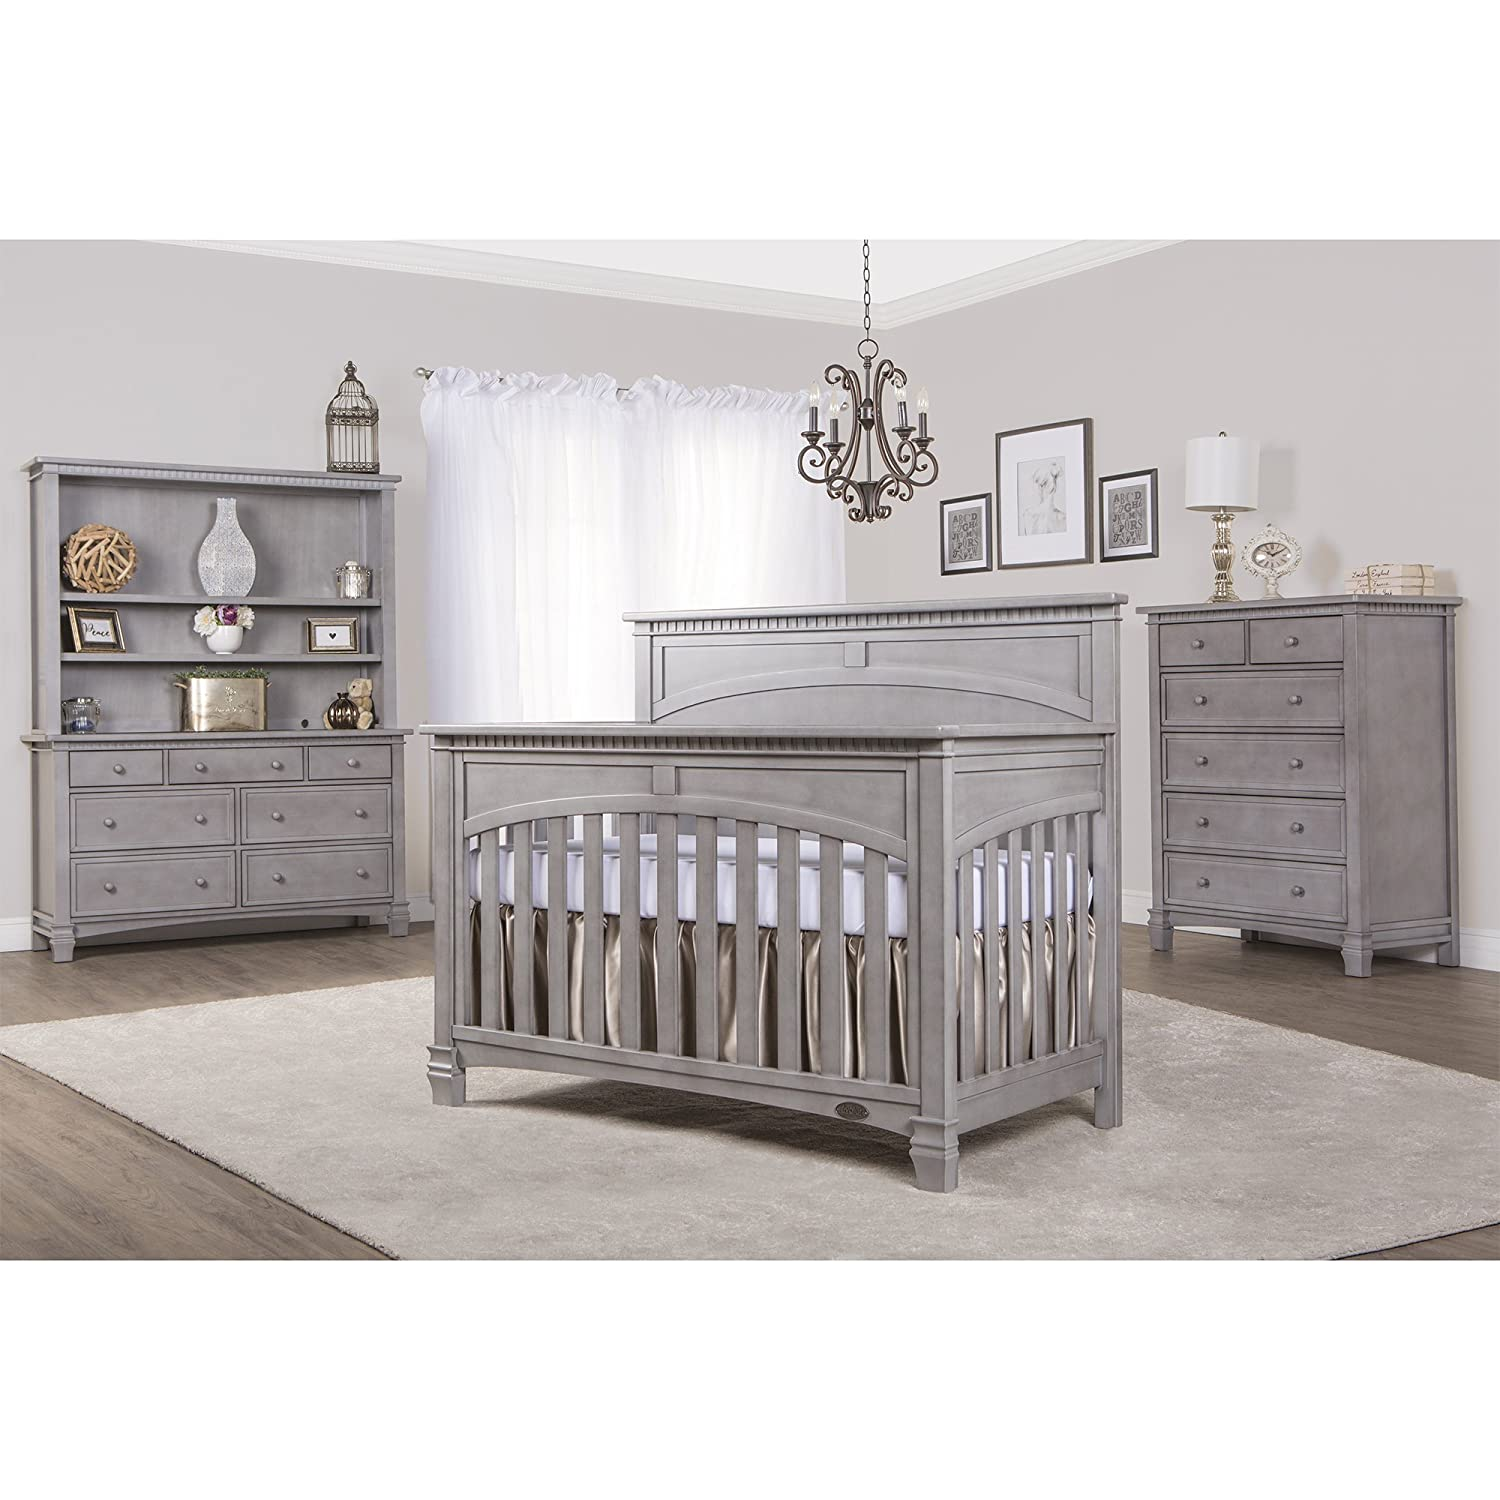 Amazon.com : Evolur Santa Fe 5 In 1 Convertible Crib, Storm Grey : Baby